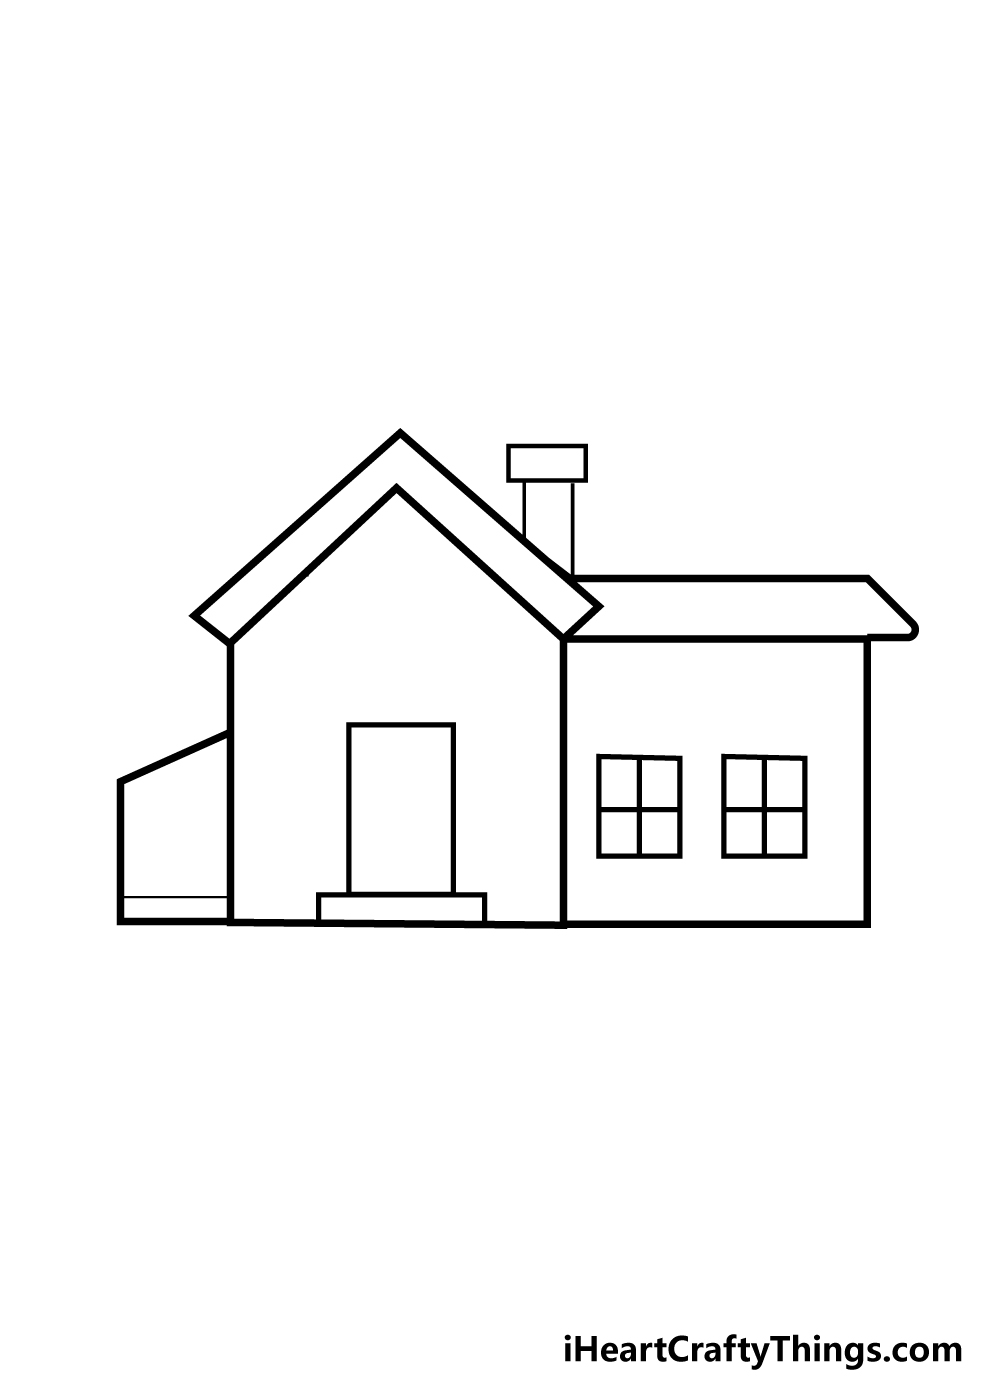 house drawing step 5